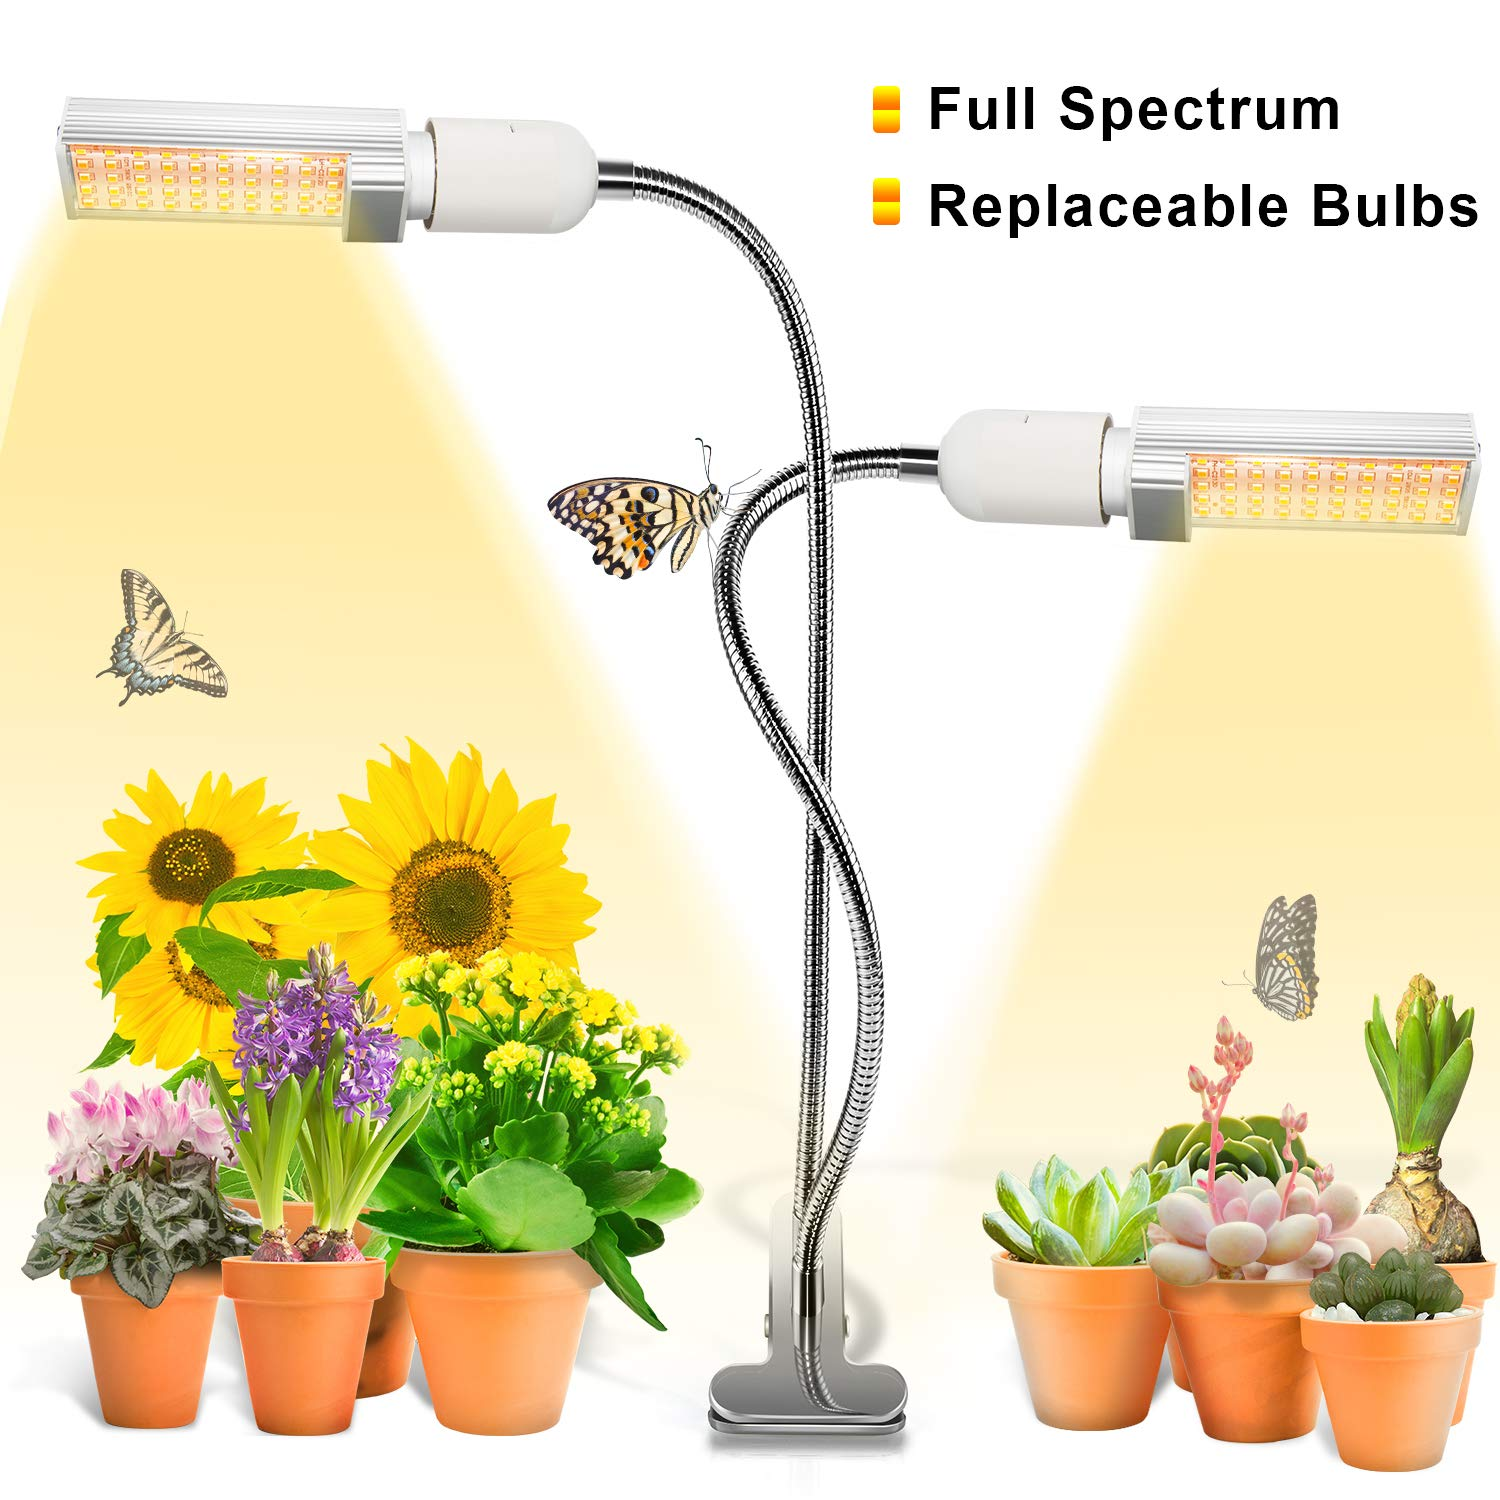 Grow Light, Ankace 50W Full Spectrum Grow Lamp, Dual Head Gooseneck Plant Lights for Indoor Plants with Replaceable Bulb, 3 Switch Modes